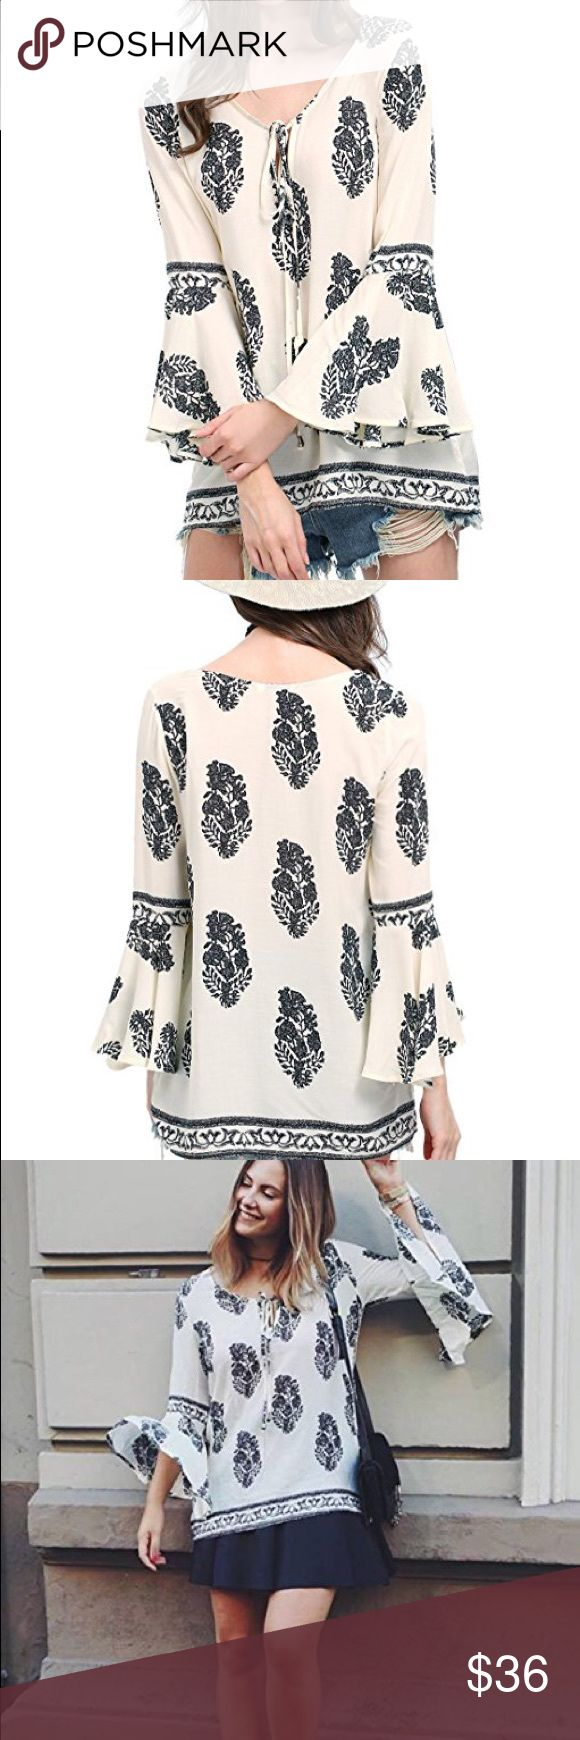 Lightweight blue & white bell sleeves blouse Brand new w tags lightweight blue and white floral printed 3/4 bell sleeves tunic blouse. Size small. 100% rayon, fabric has no stretch.  POSH RULES ONLY NO PP NO TRADES NO LOWBALL OFFERS  HAPPY POSHING! boutique Tops Blouses